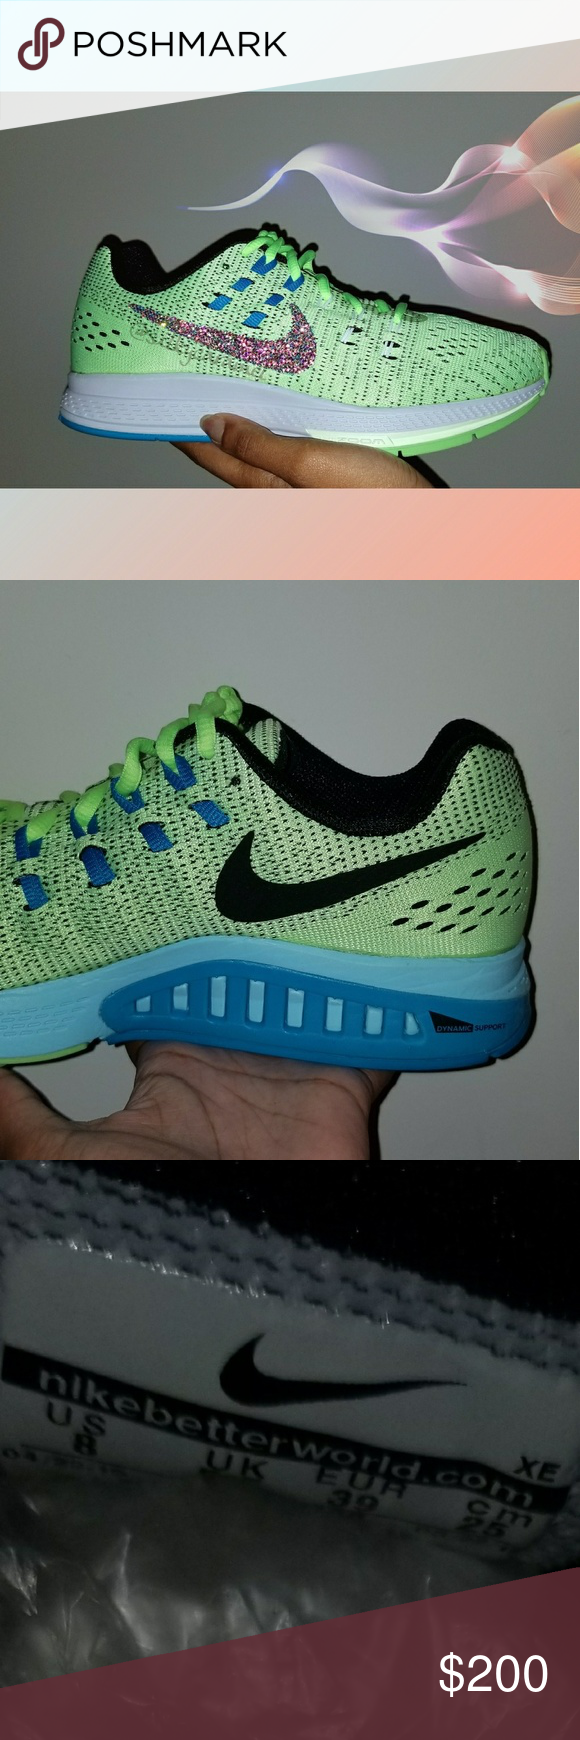 RHINESTONE NIKE RUNNING STABLE RIDE RESPONSIVE Shoes are